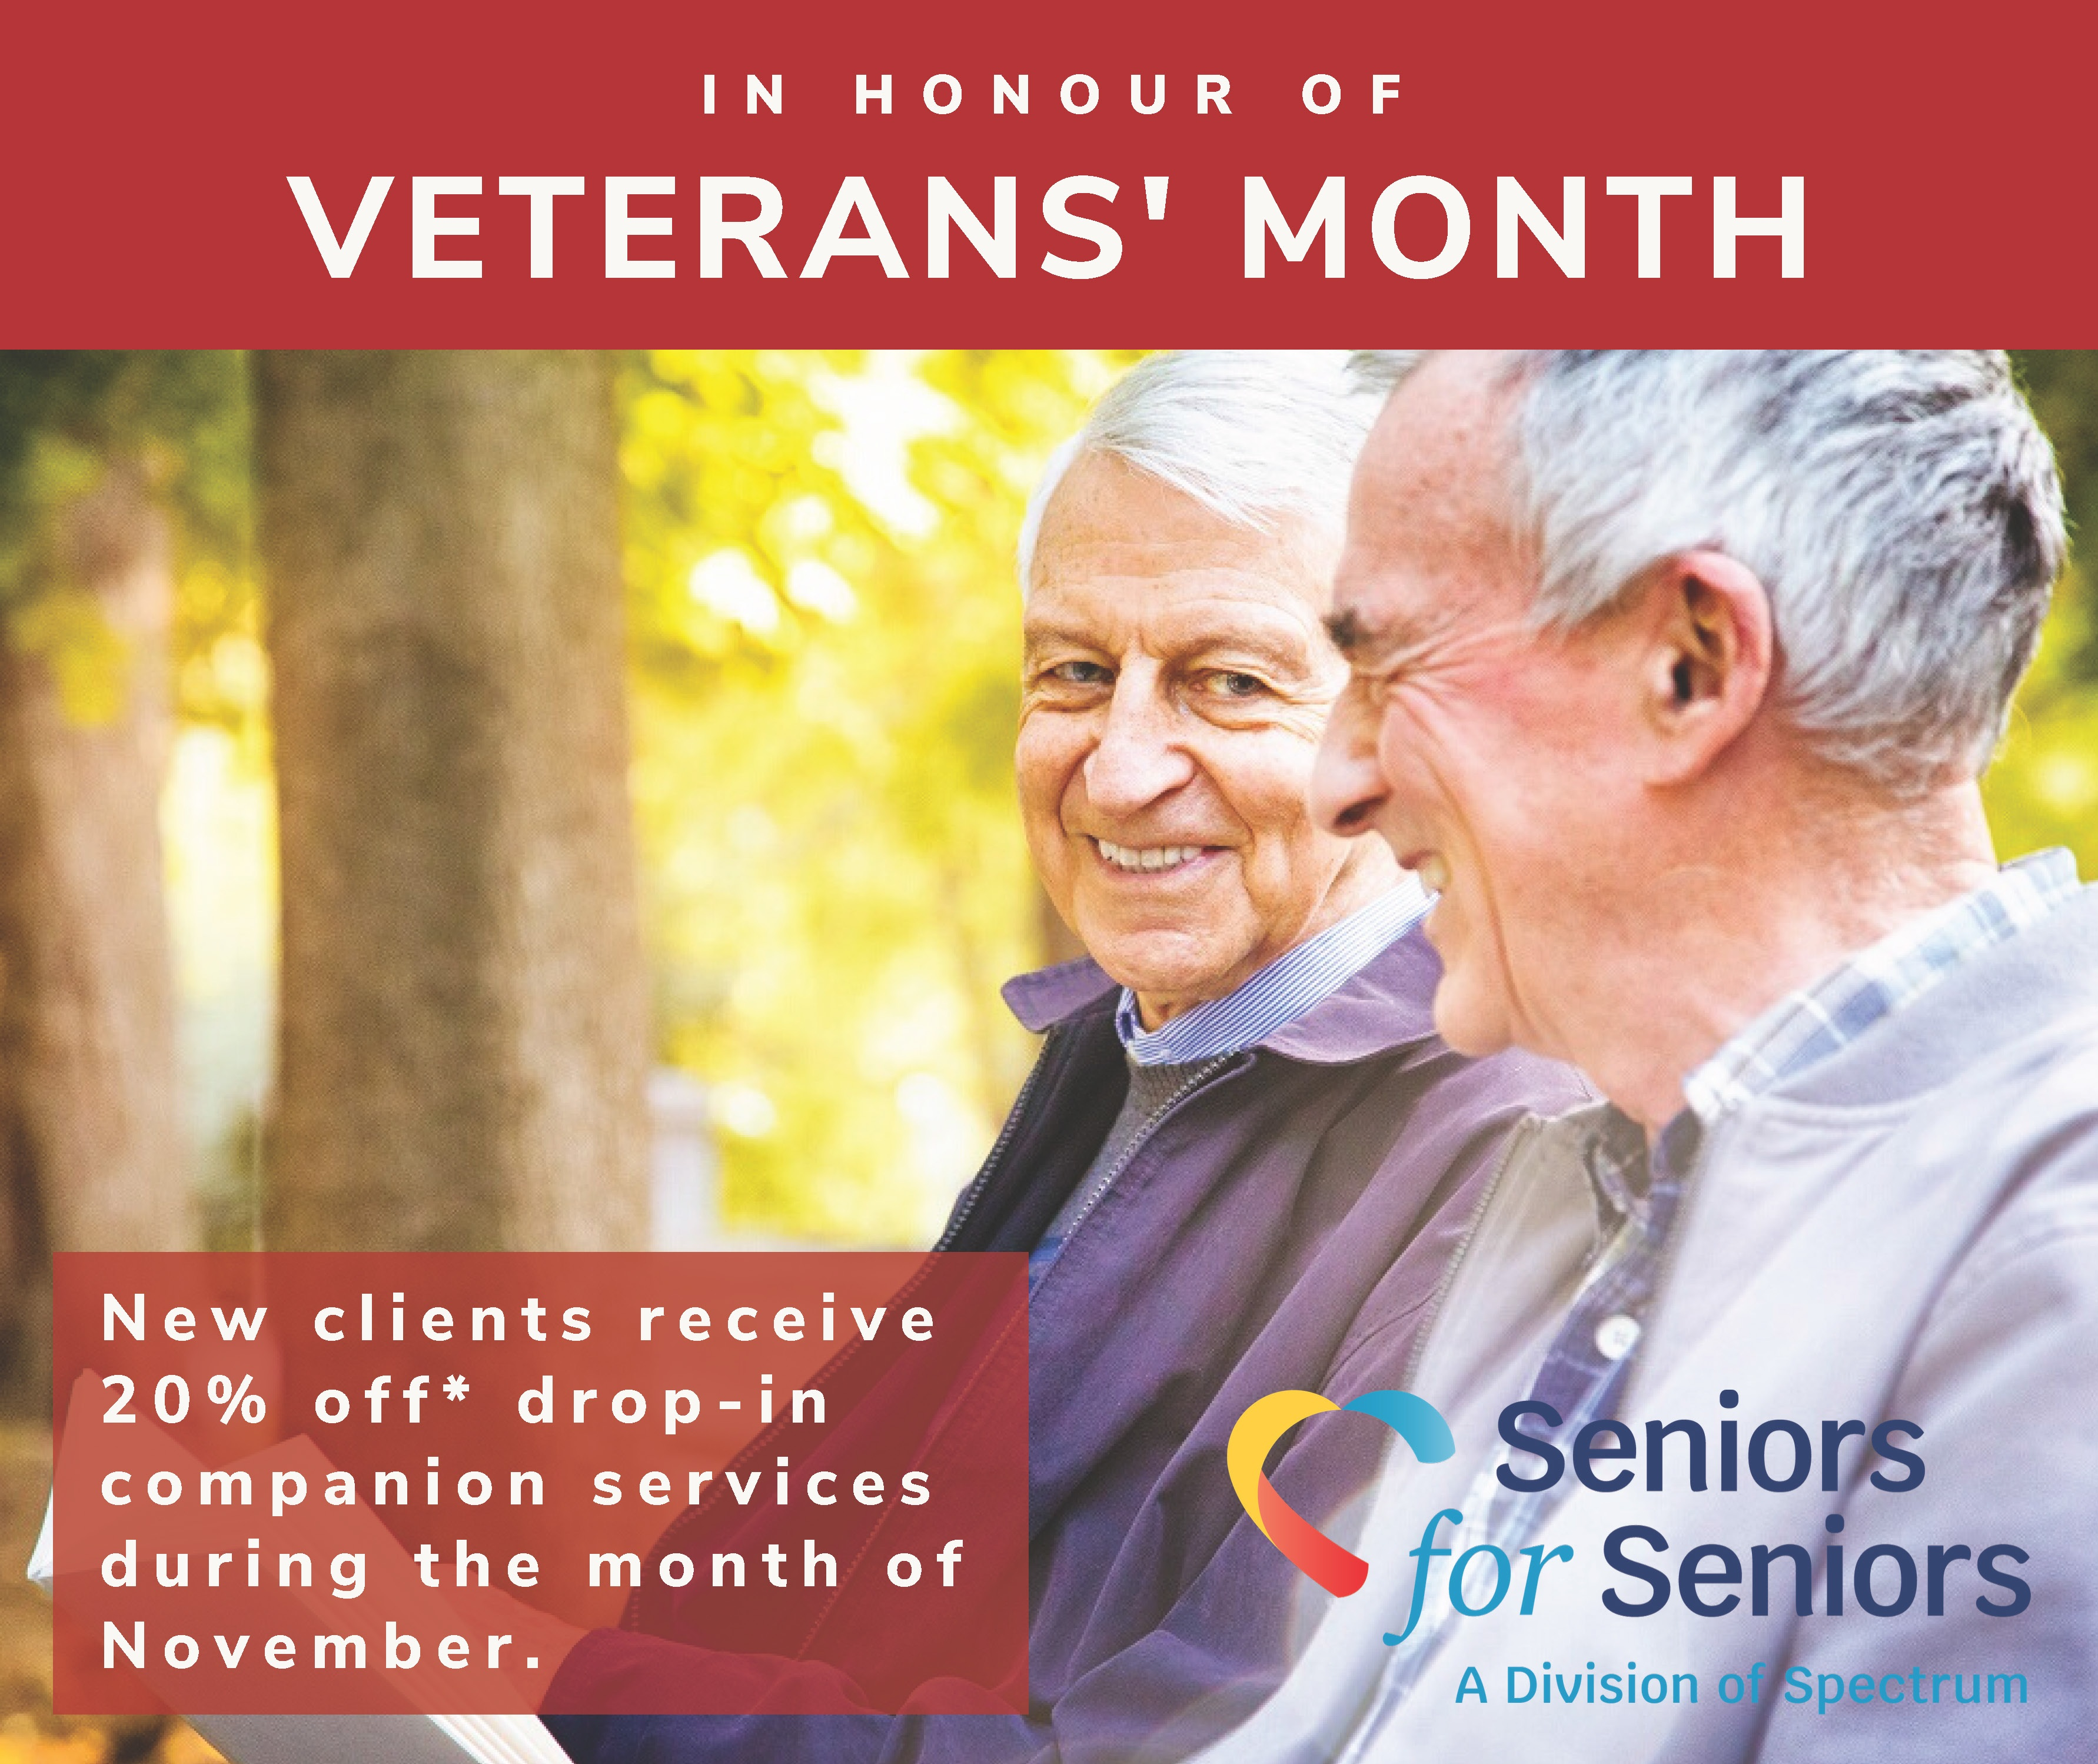 Image: A special Veterans' Month discount